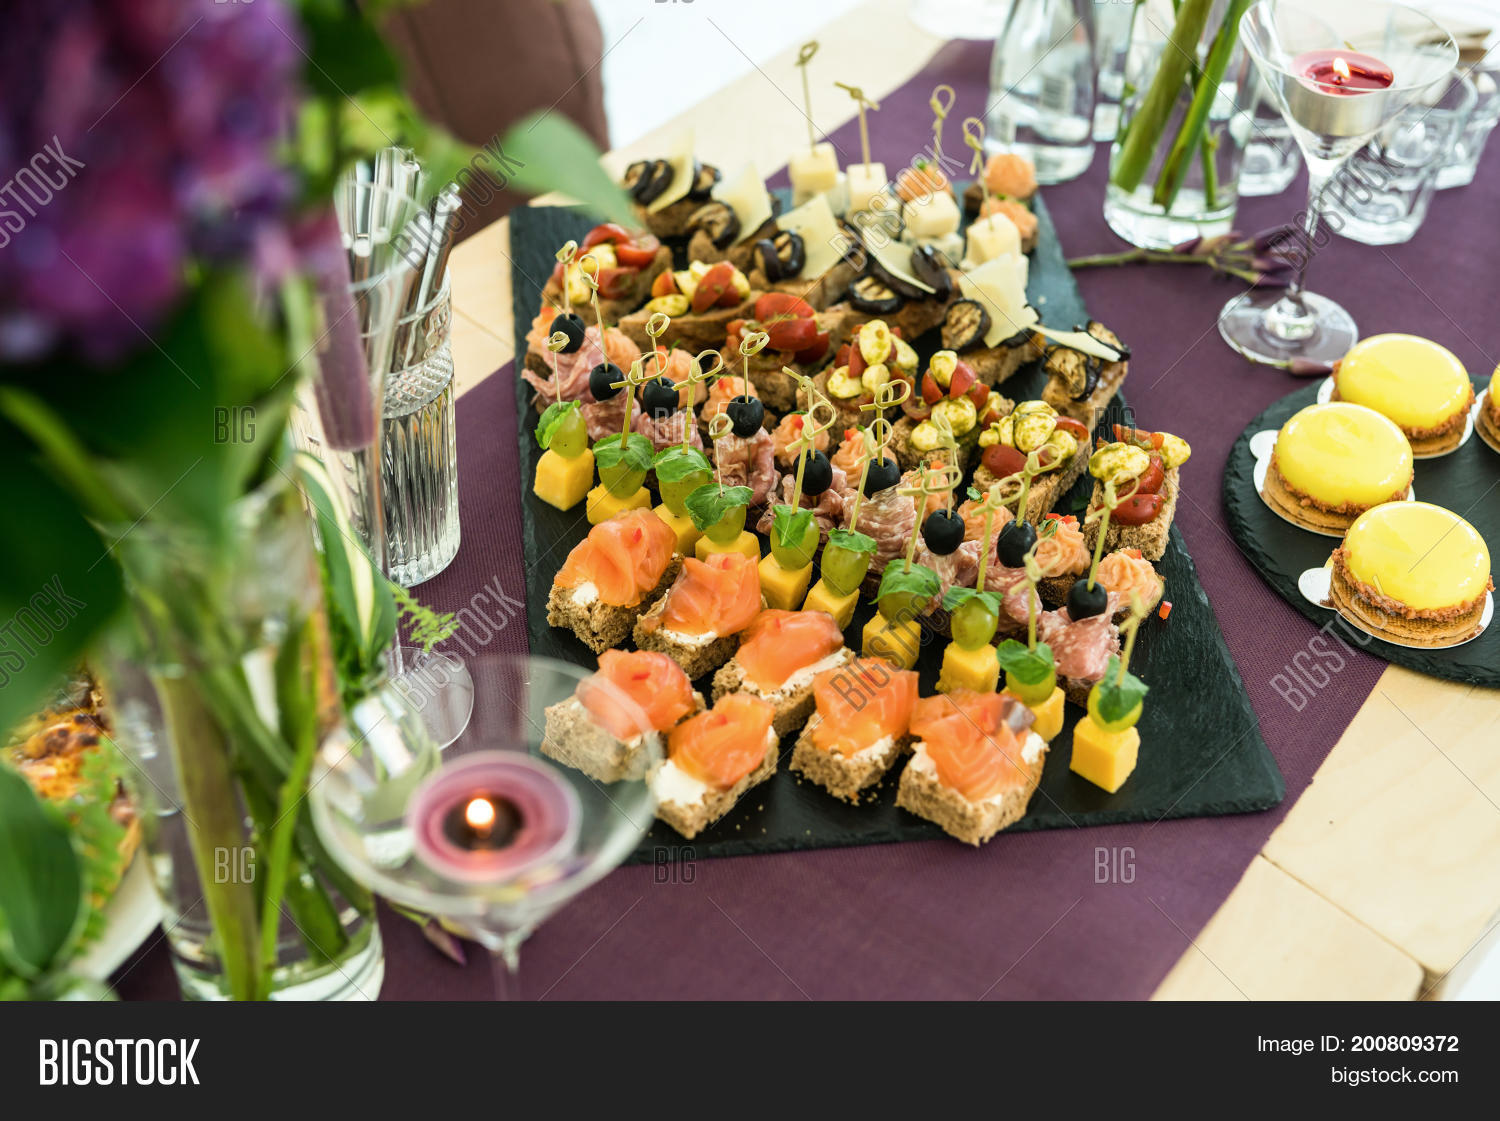 appetite,appetizer,banquet,birthday,black,brunch,buffet,cake,canape,candle,cater,catered,catering,cuisine,decoration,delicious,dinner,event,festive,flowers,food,holiday,hotel,lunch,luxury,meal,party,prepared,purple,restaurant,service,set,shale,table,tasty,violet,wedding